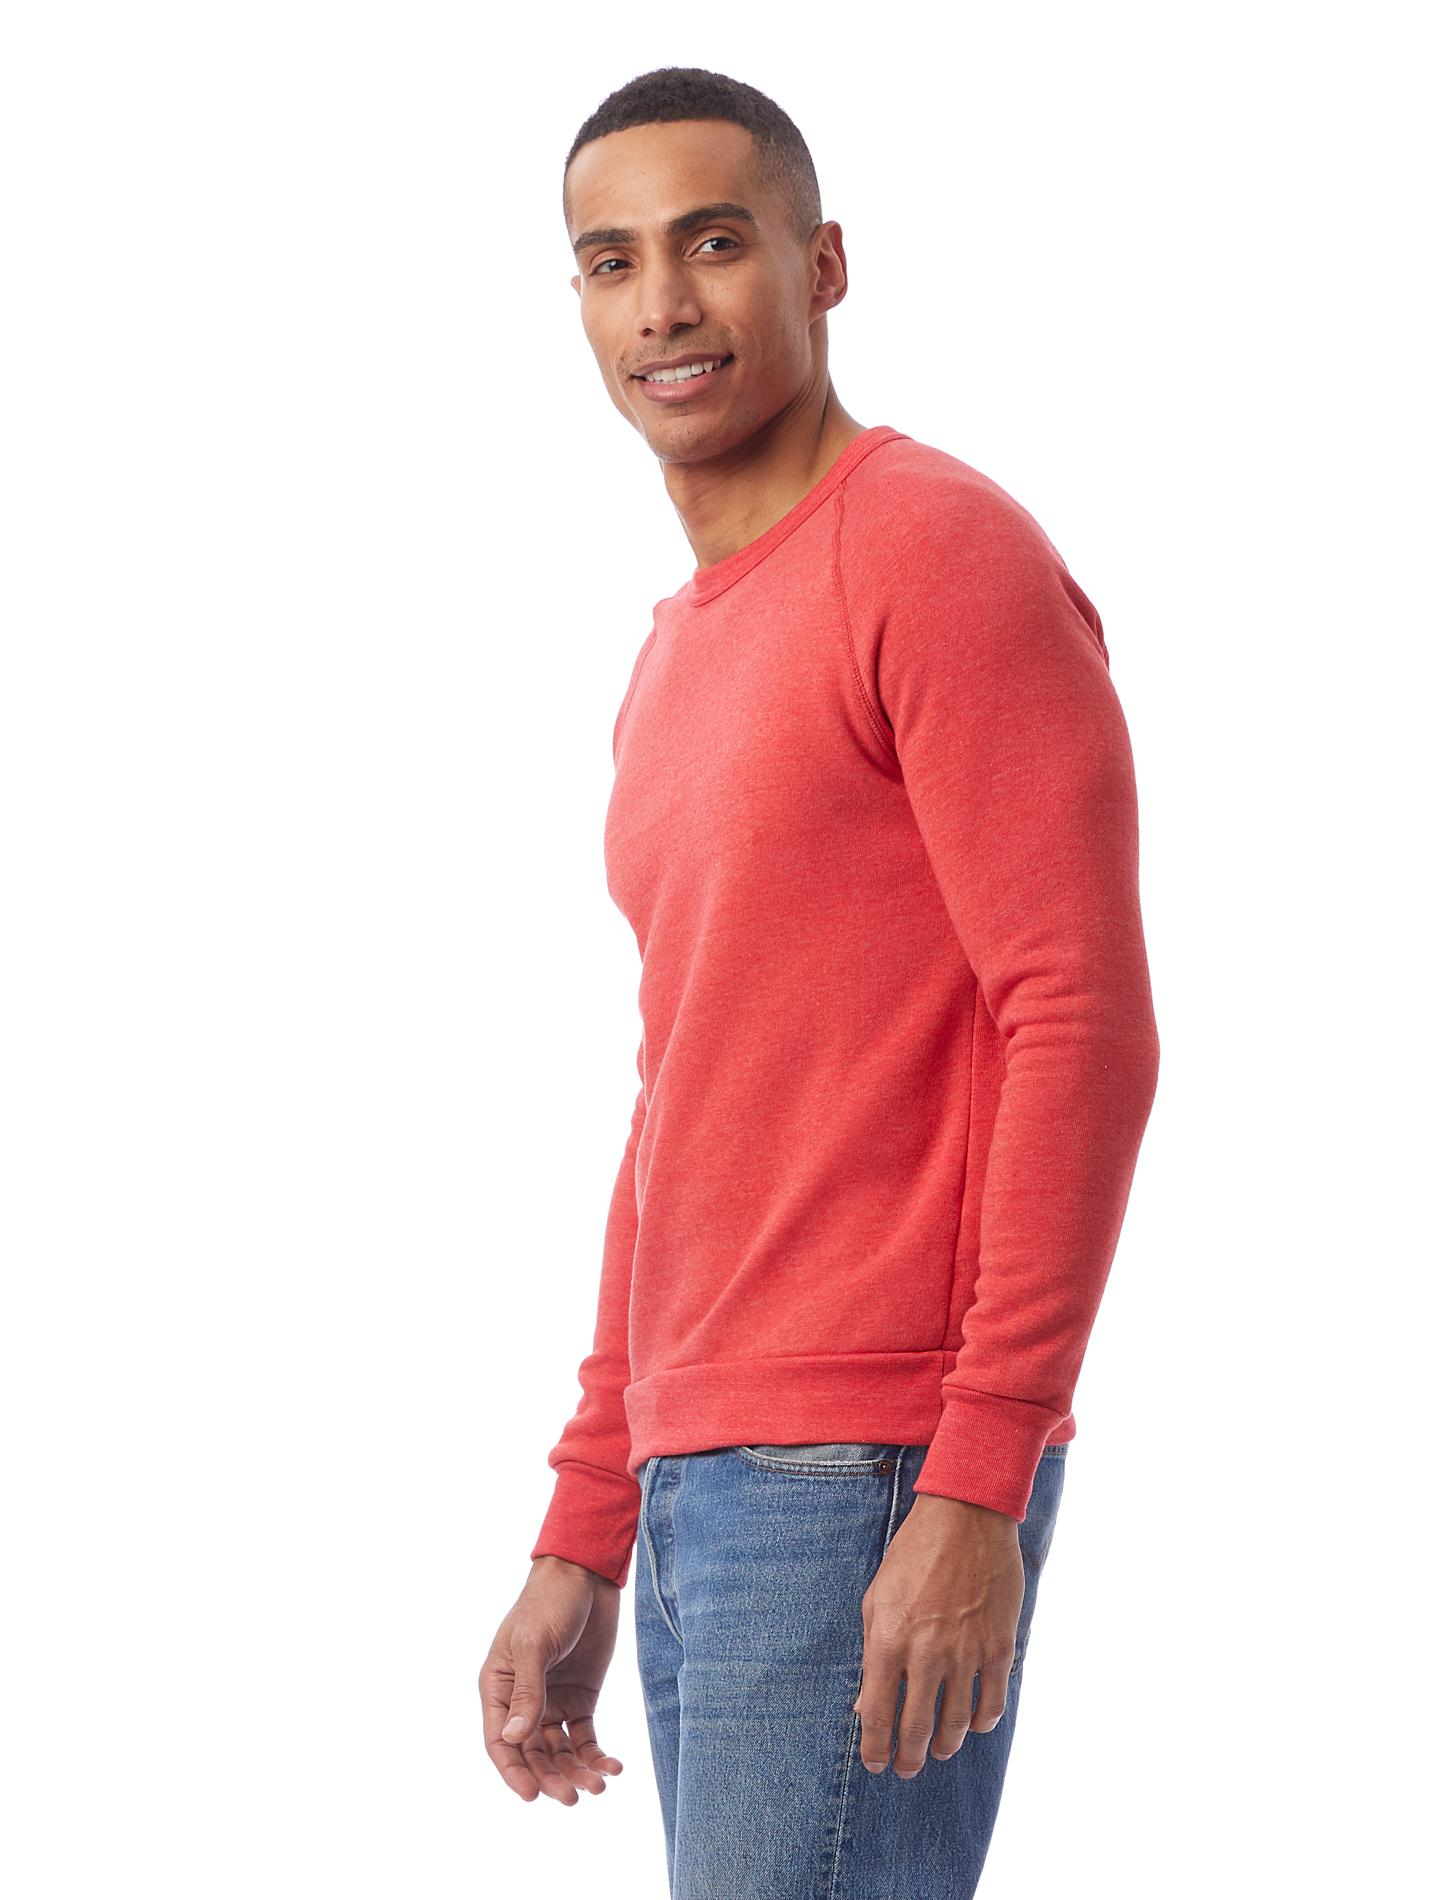 064abd142856 Lyst - Alternative Apparel Champ Eco-fleece Sweatshirt in Red for Men